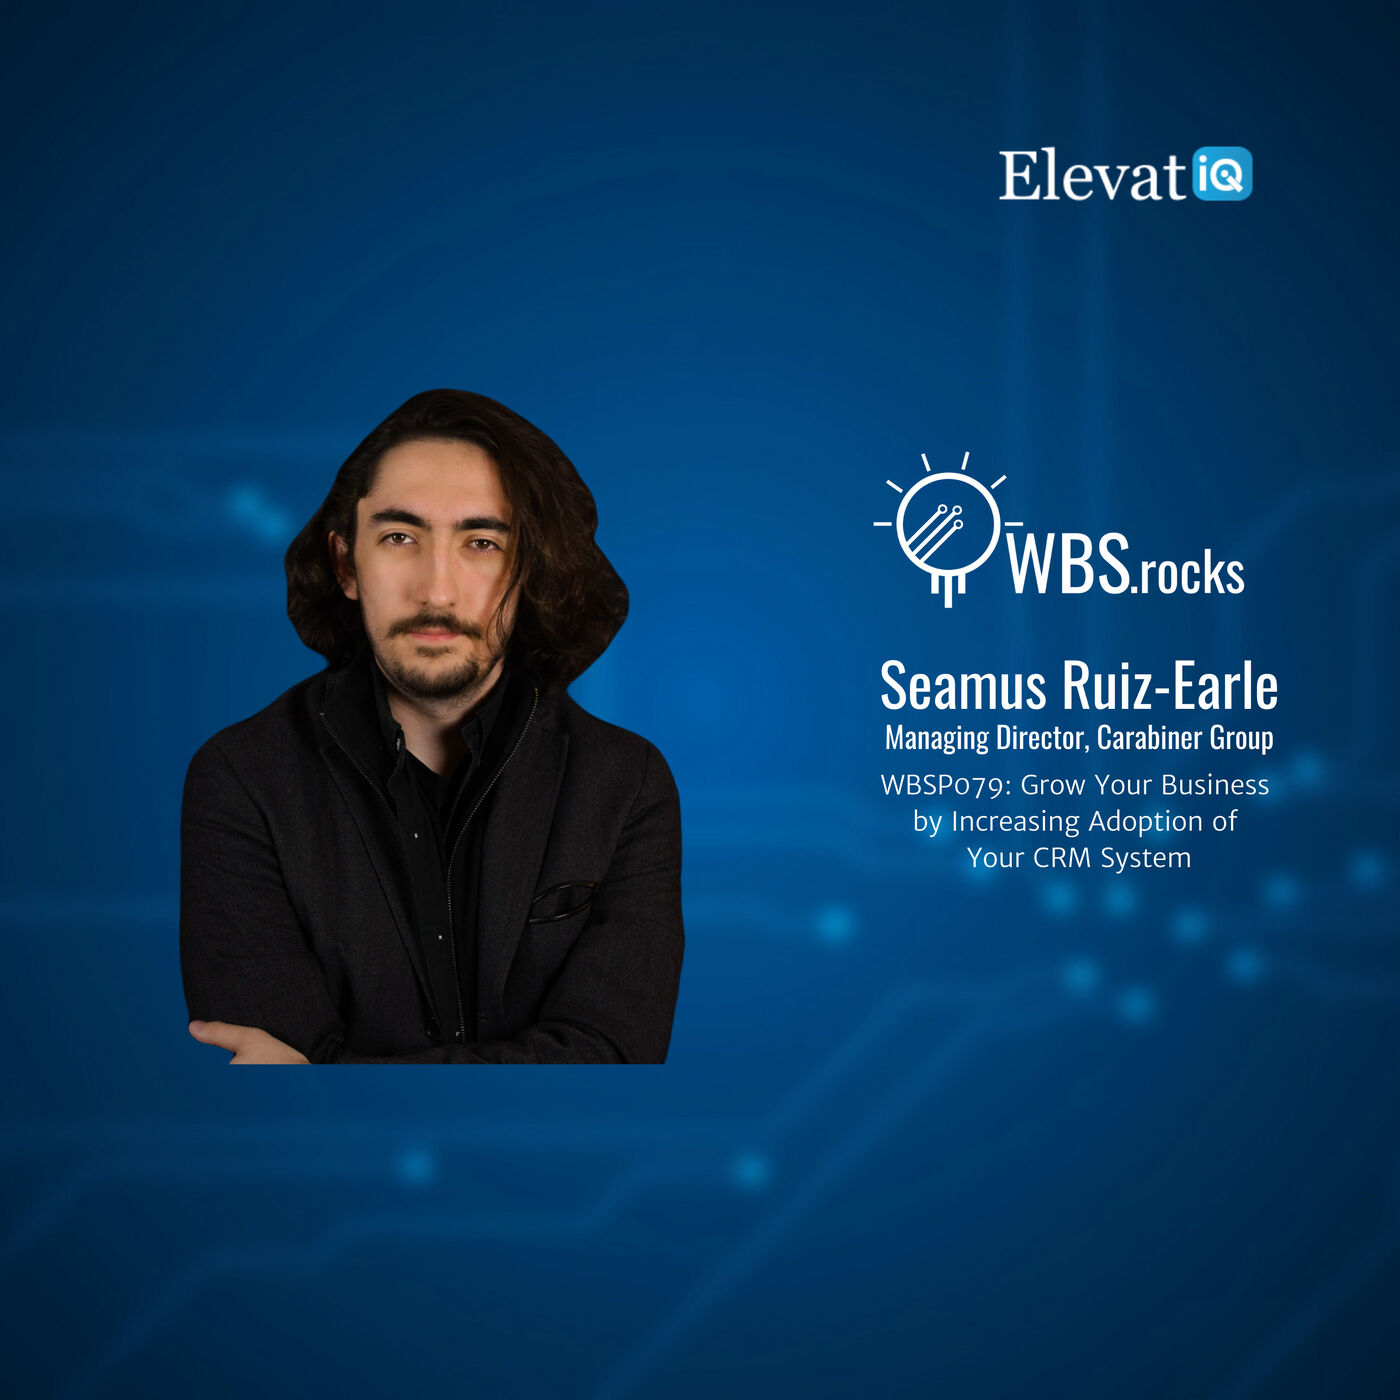 WBSP079: Grow Your Business by Increasing Adoption of Your CRM System w/ Seamus Ruiz-Earle